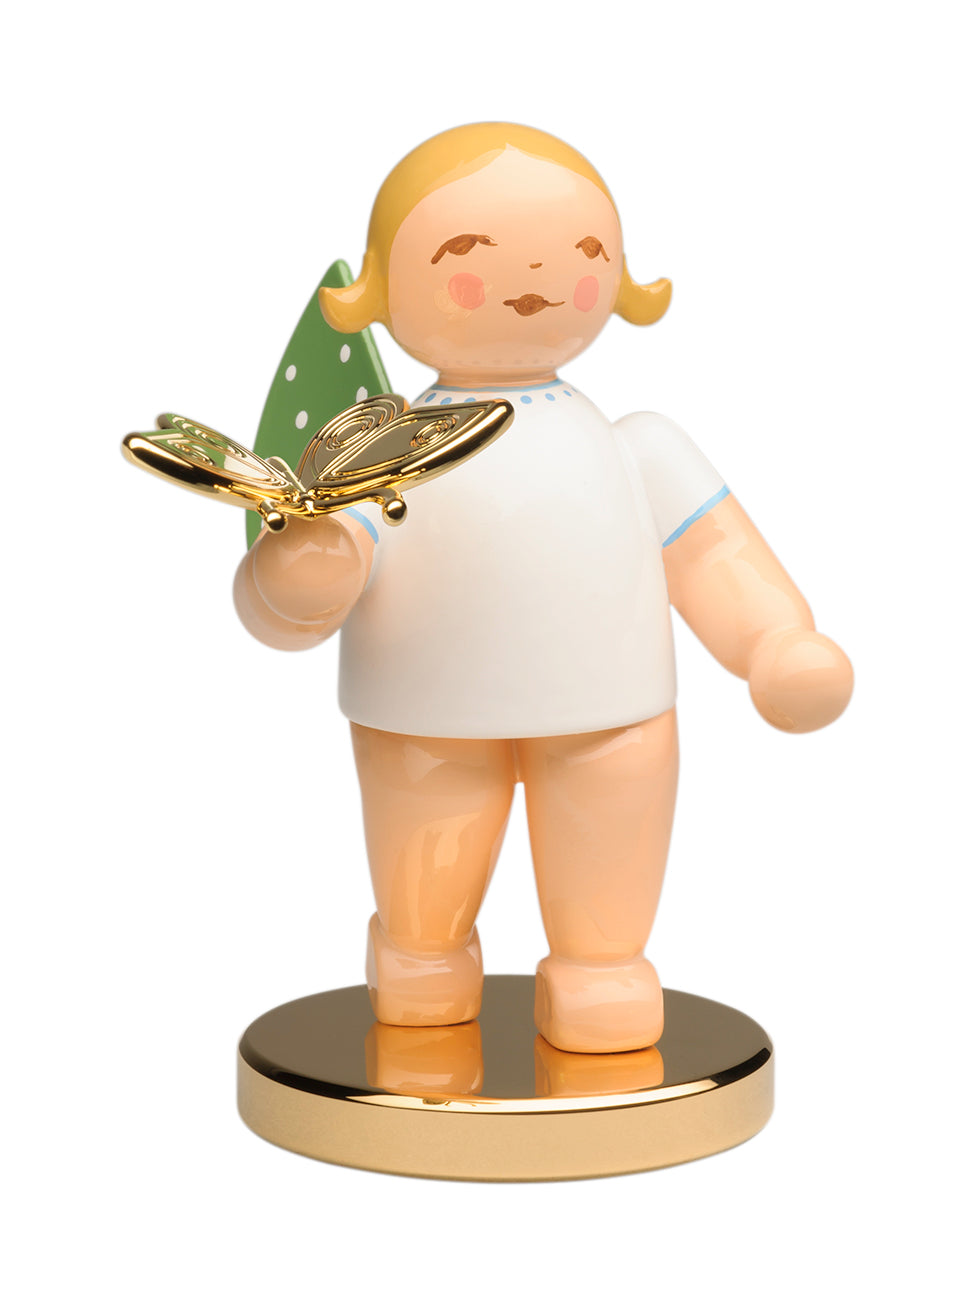 Limited Gold Edition No. 13 - Grunhainichen Angel / The Dreamer / Butterfly / in Splinter Box on a Gold-Plated Base / New 2020